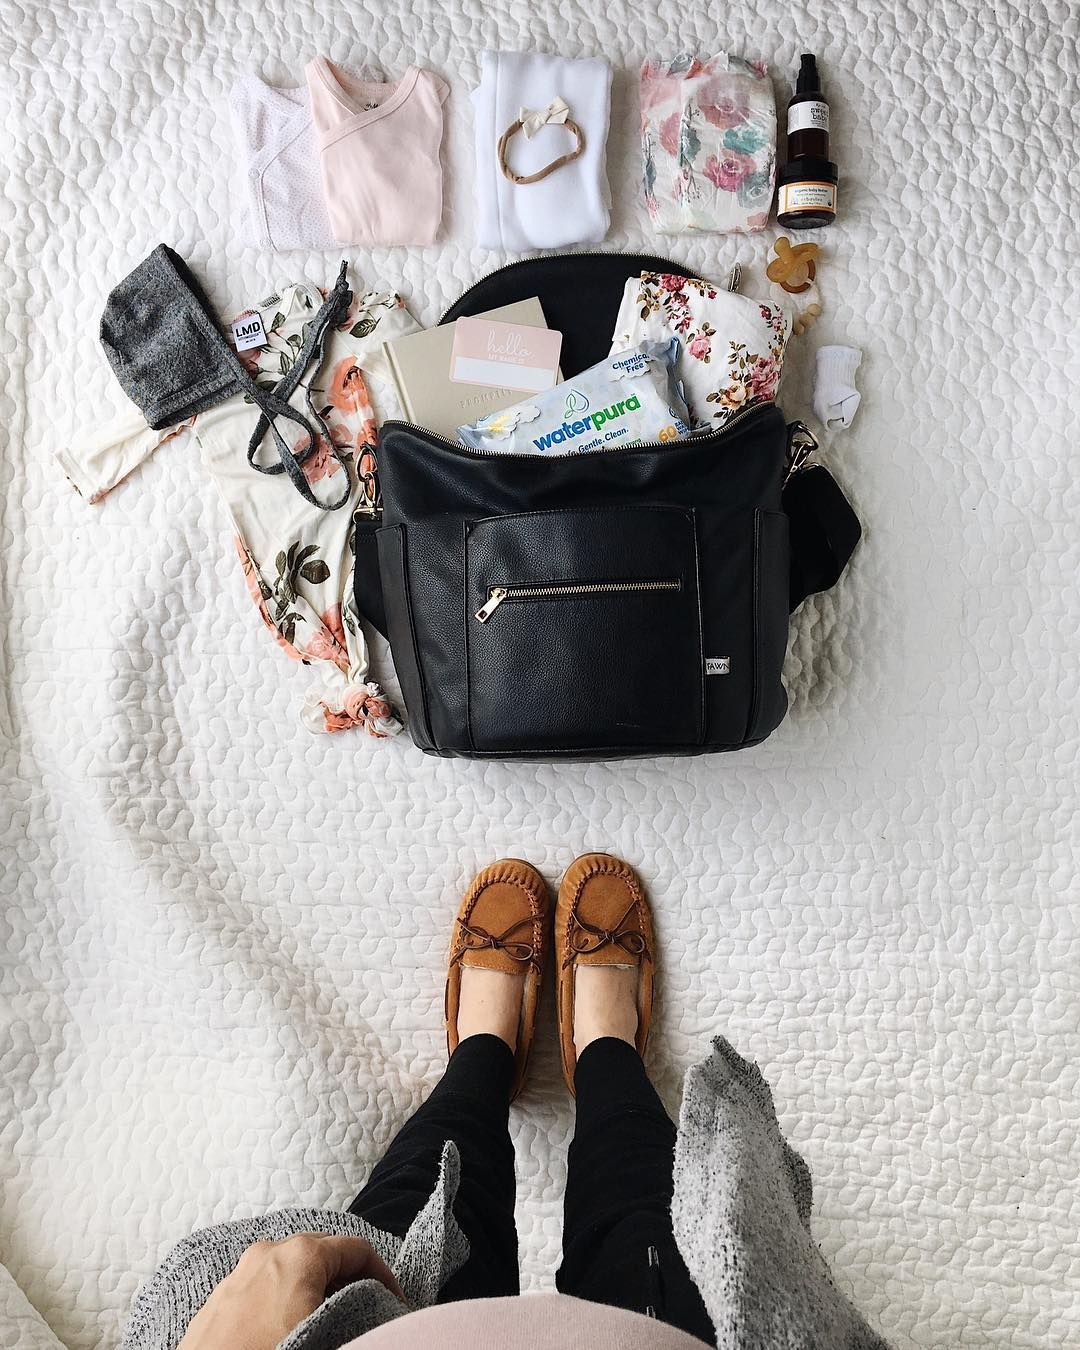 How To Pack Your Hospital Bag (With images)   Fashionable ...